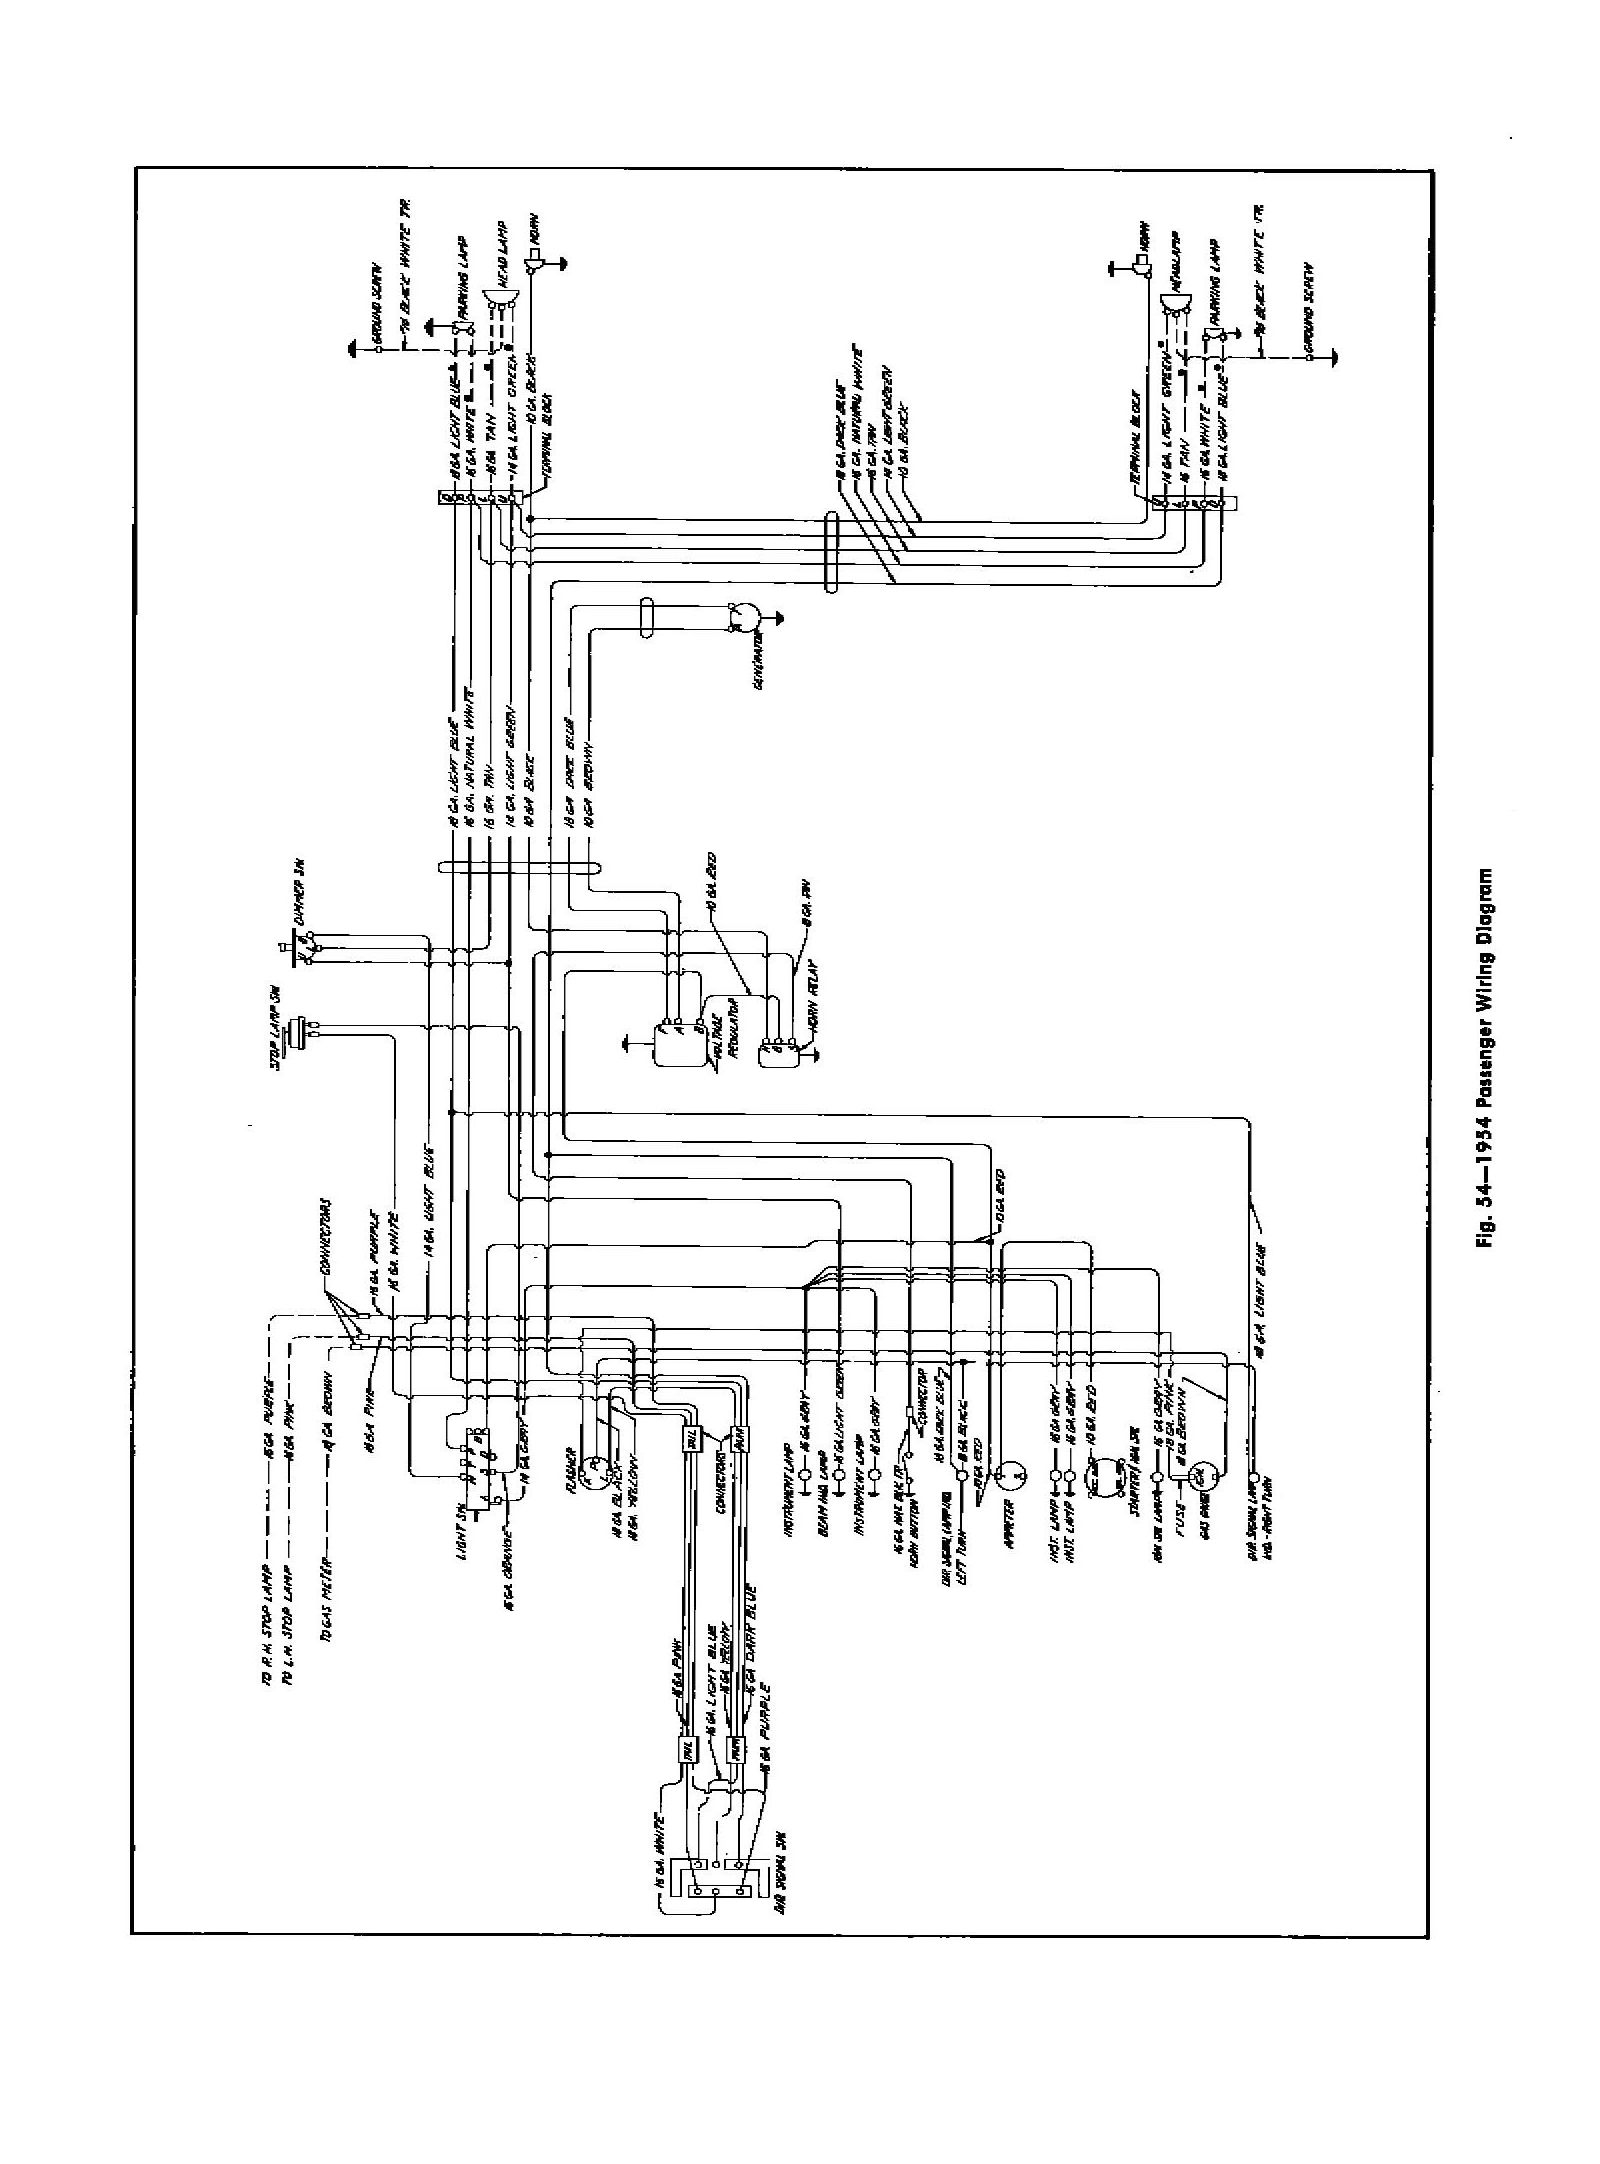 hight resolution of 54 chevy wiring diagram wiring diagram todays rh 15 6 12 1813weddingbarn com 1954 235 chevy engine parts 1954 chevy truck engine compartment